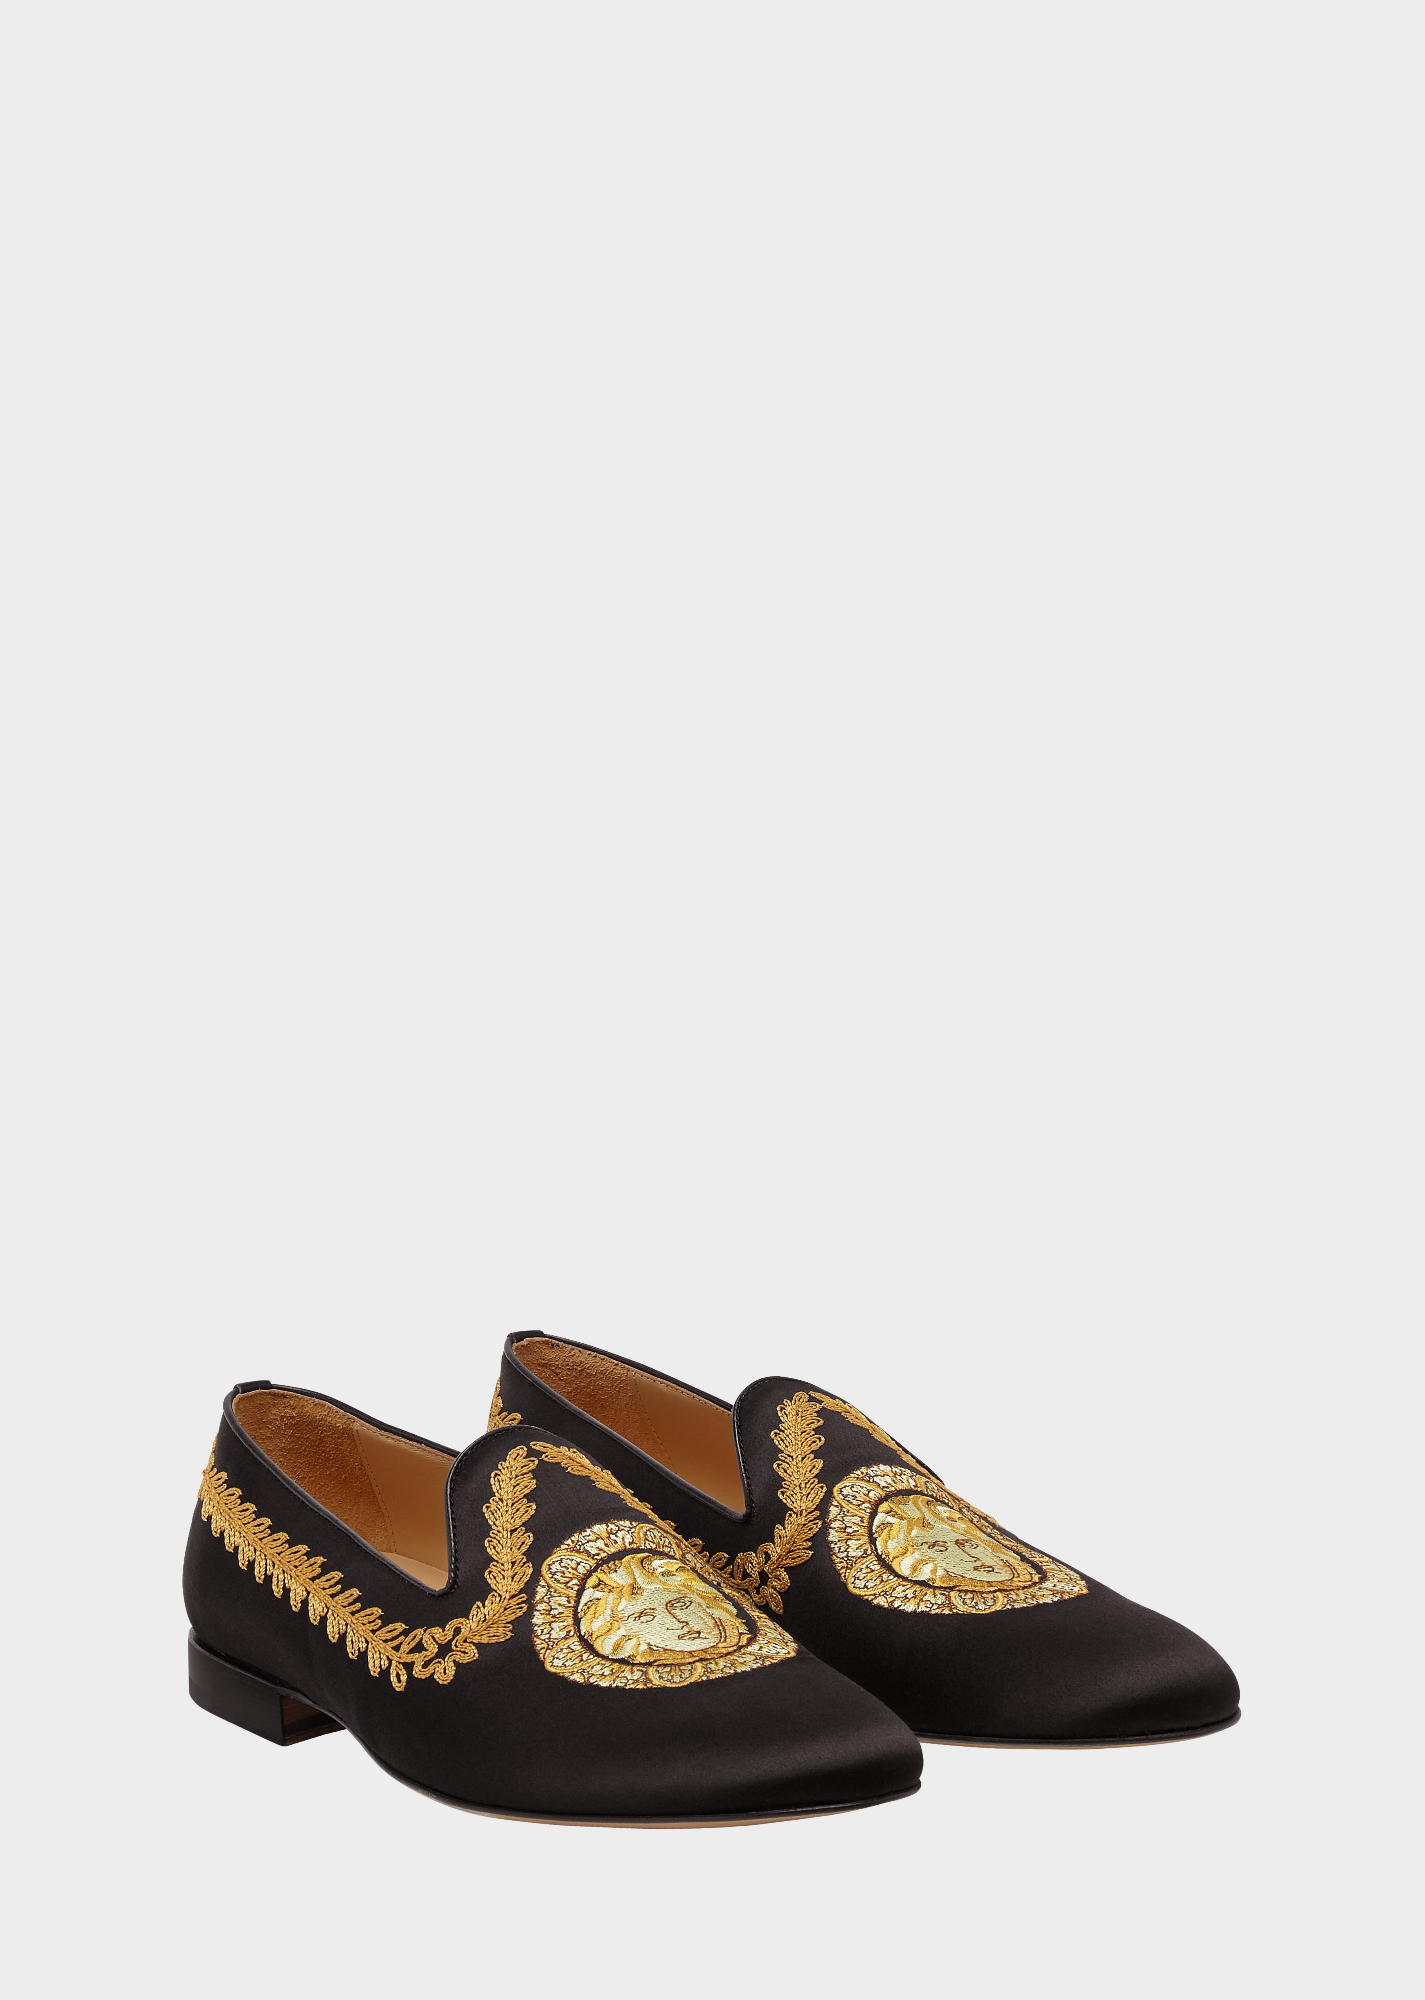 5b514812c3bf VERSACE Embroidered Gold Hibiscus Satin Loafers.  versace  shoes ...